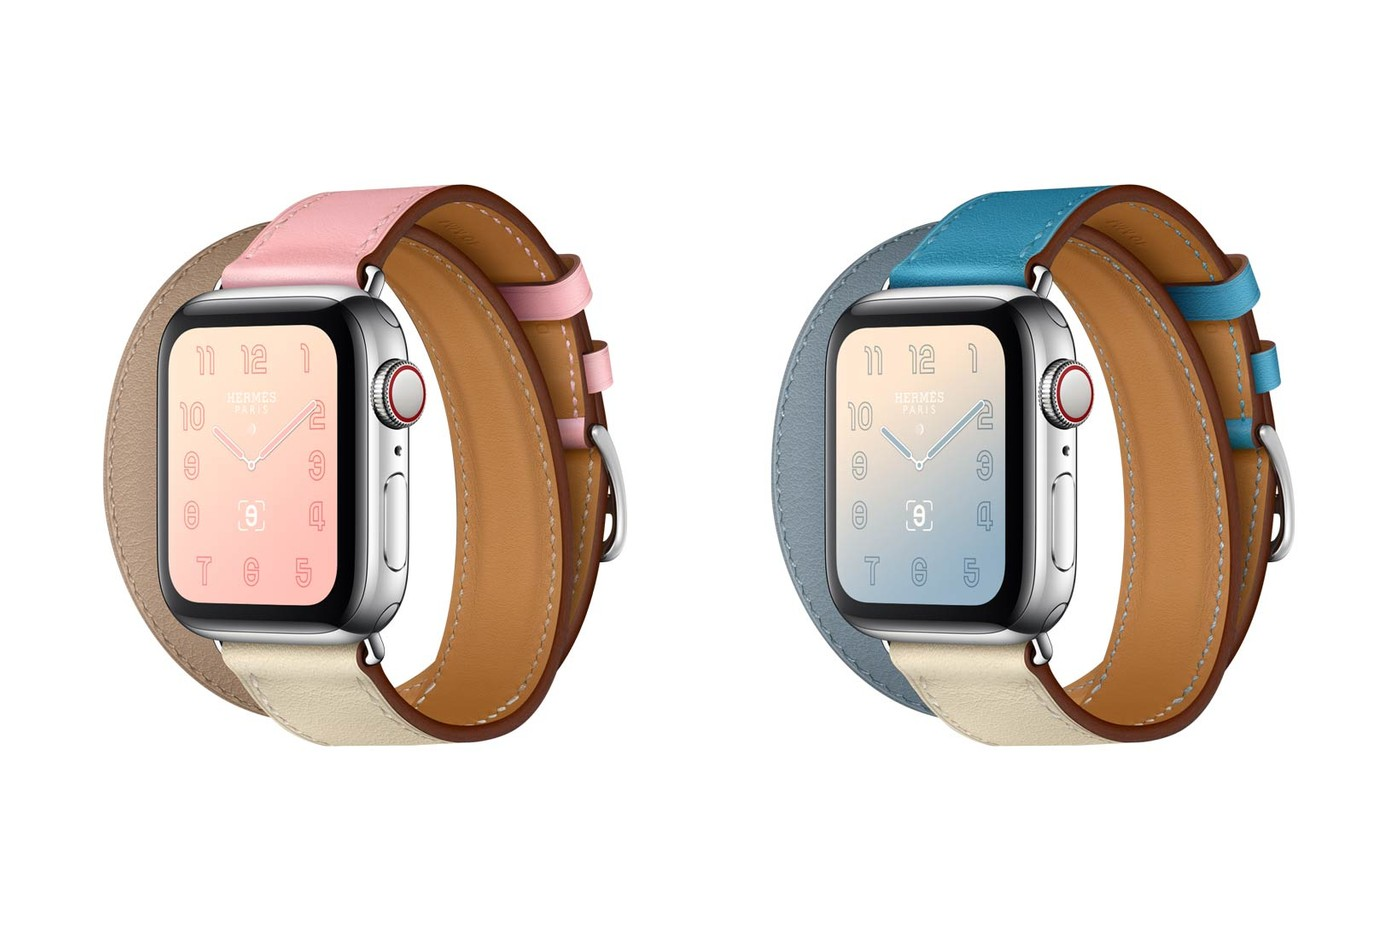 https___hypebeast.com_wp-content_blogs.dir_6_files_2019_03_apple-watch-bands-nike-hermes-pink-blue-1